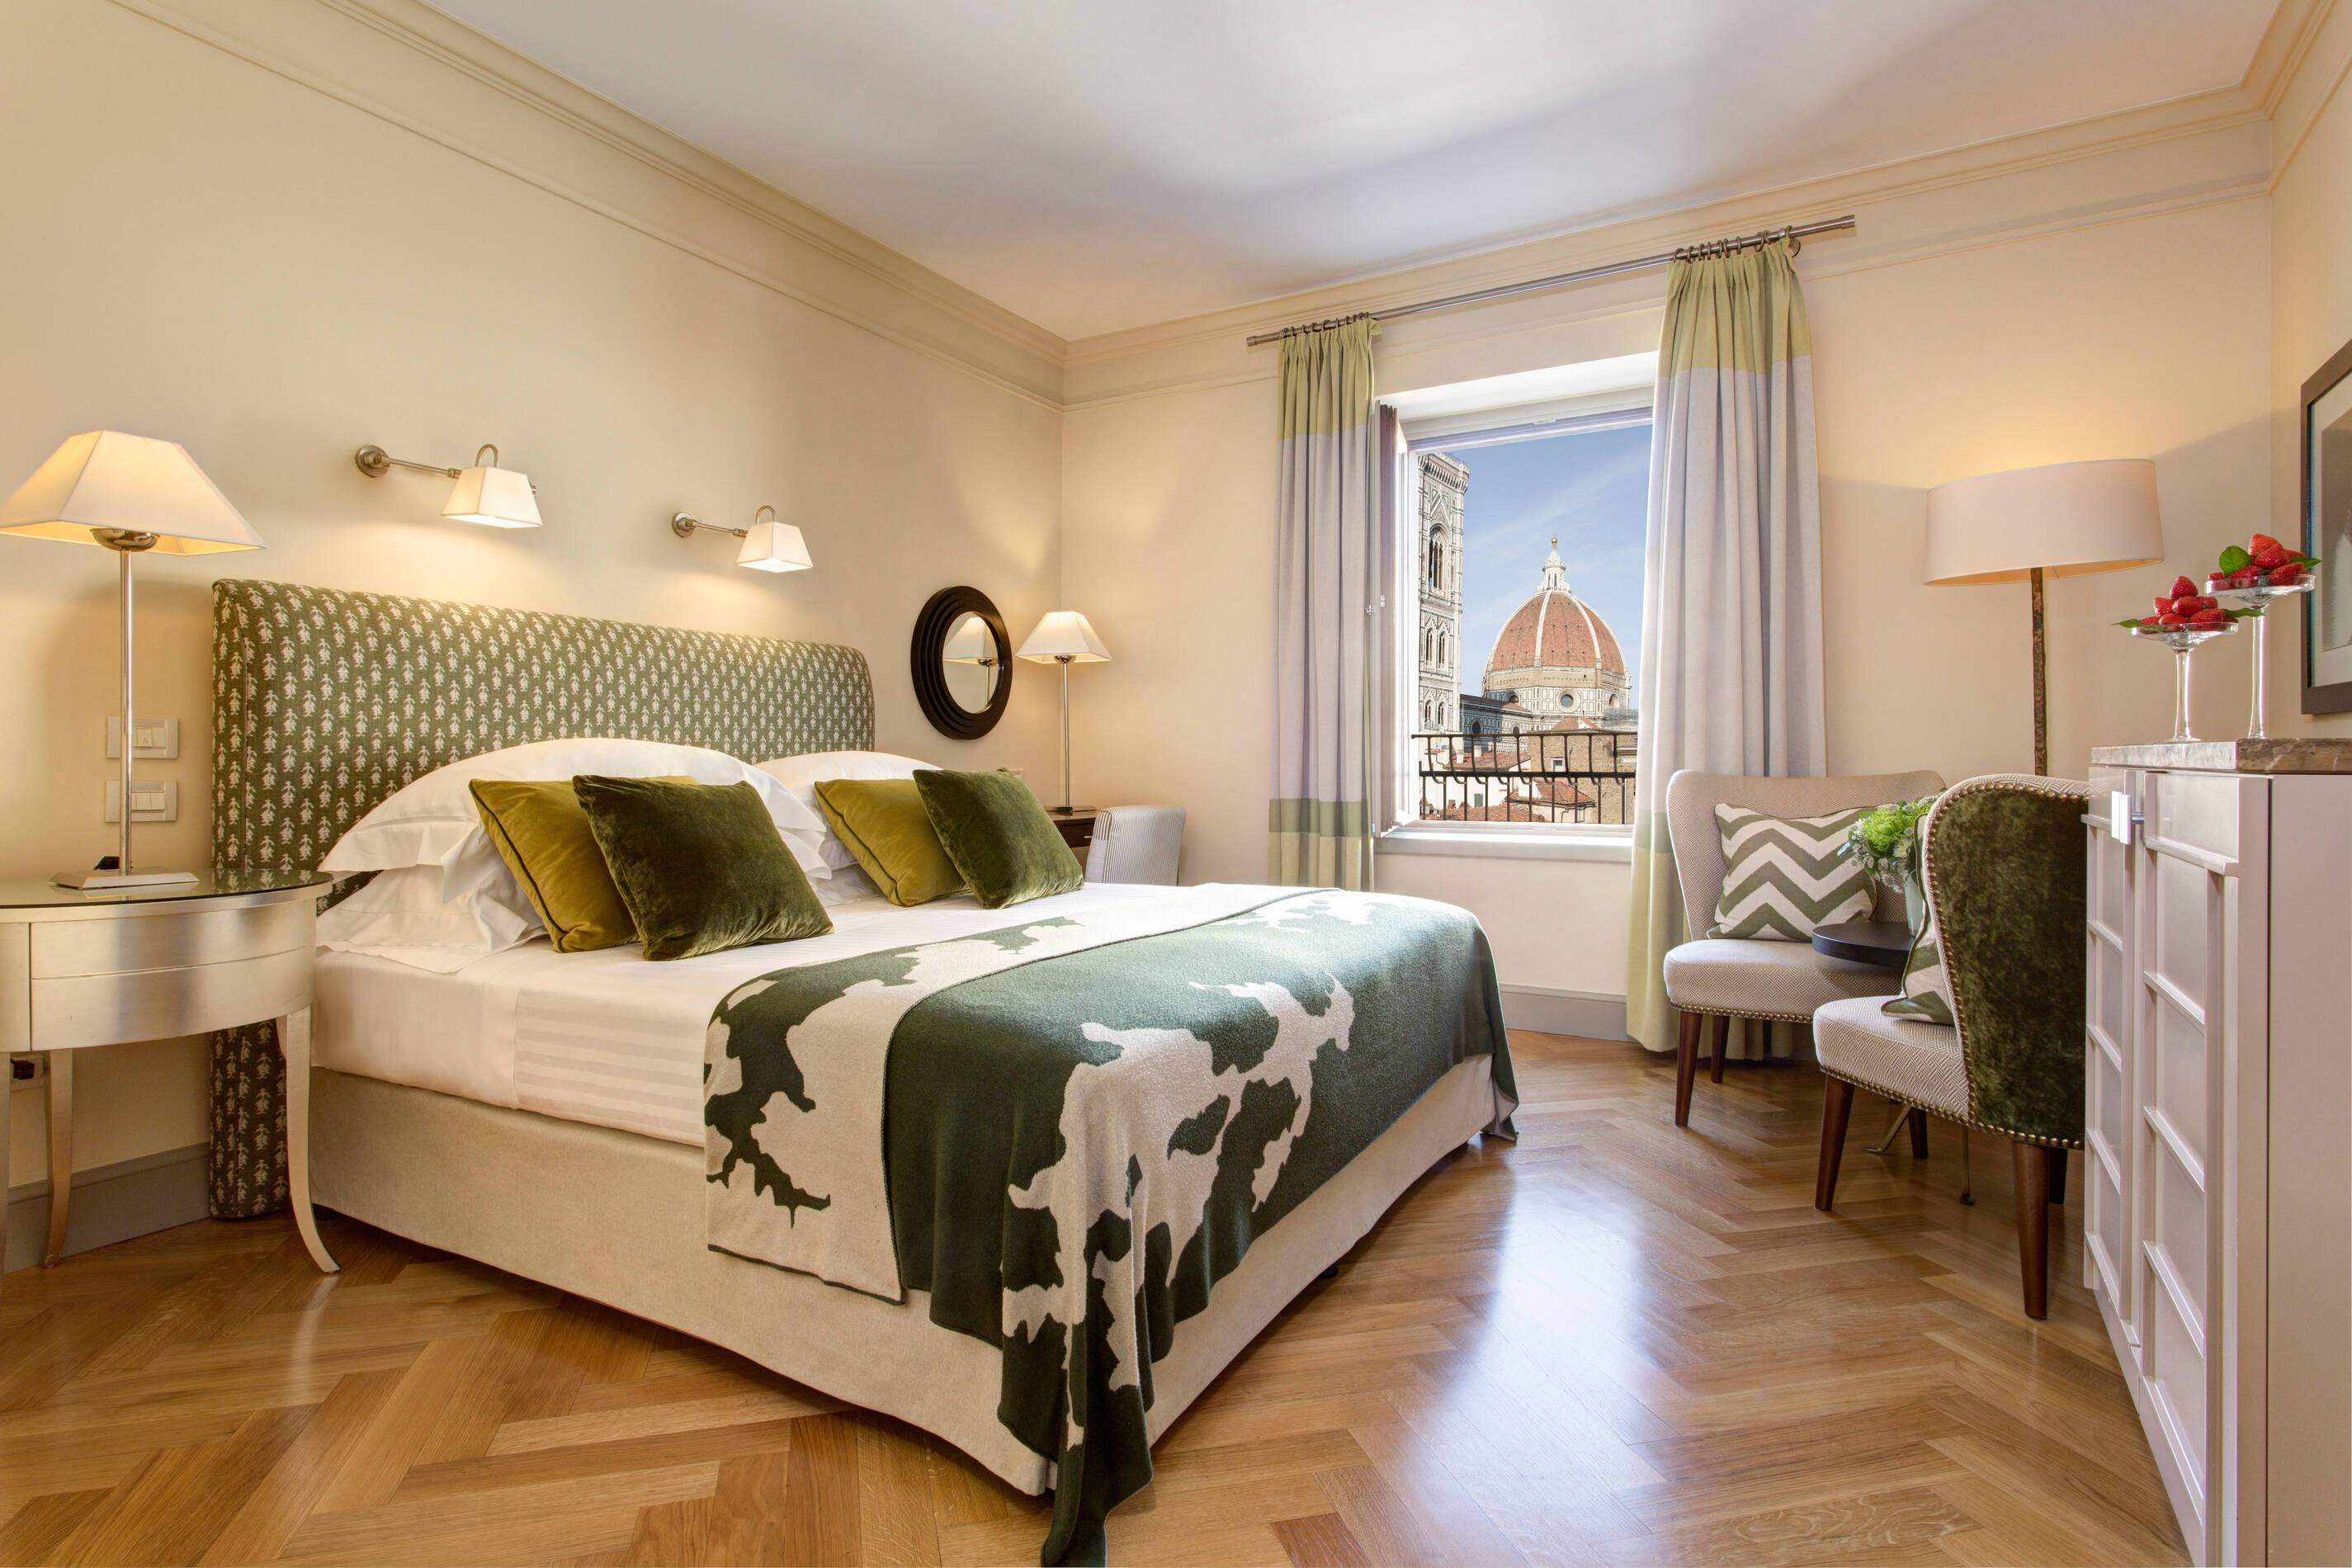 Savoy Florence Rocco Forte Duomo View Room